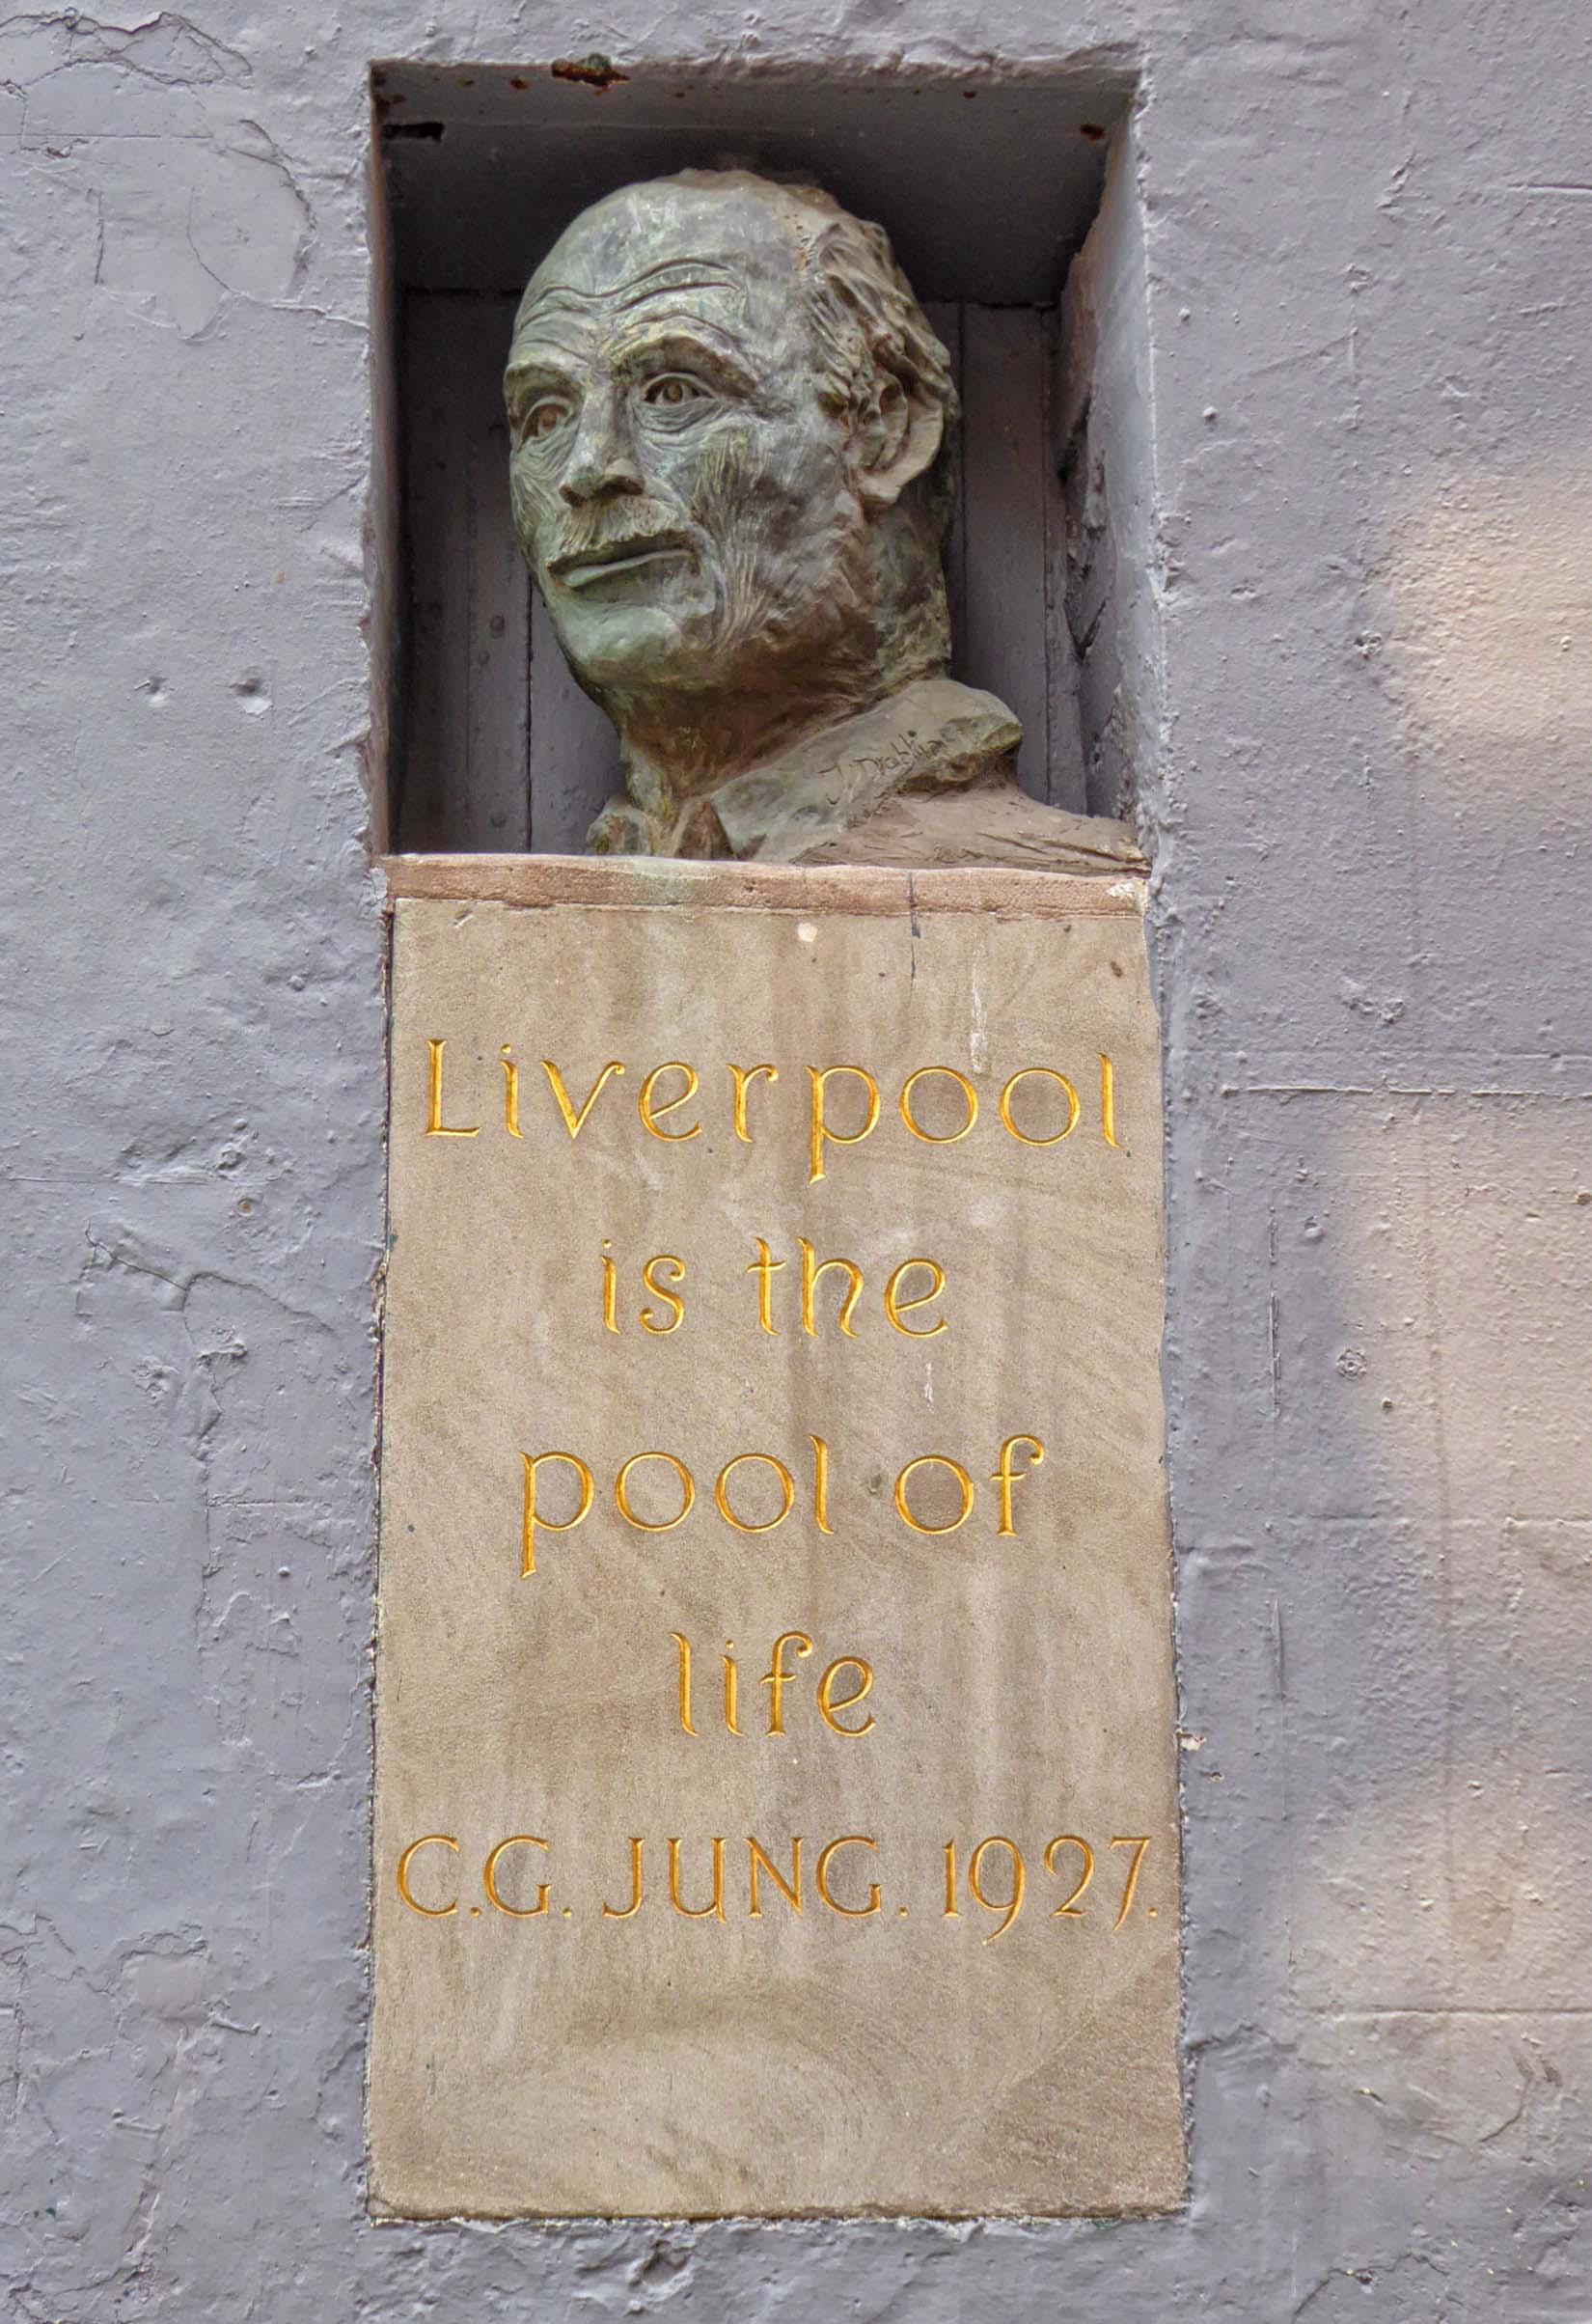 Bust of a man in a niche and text below